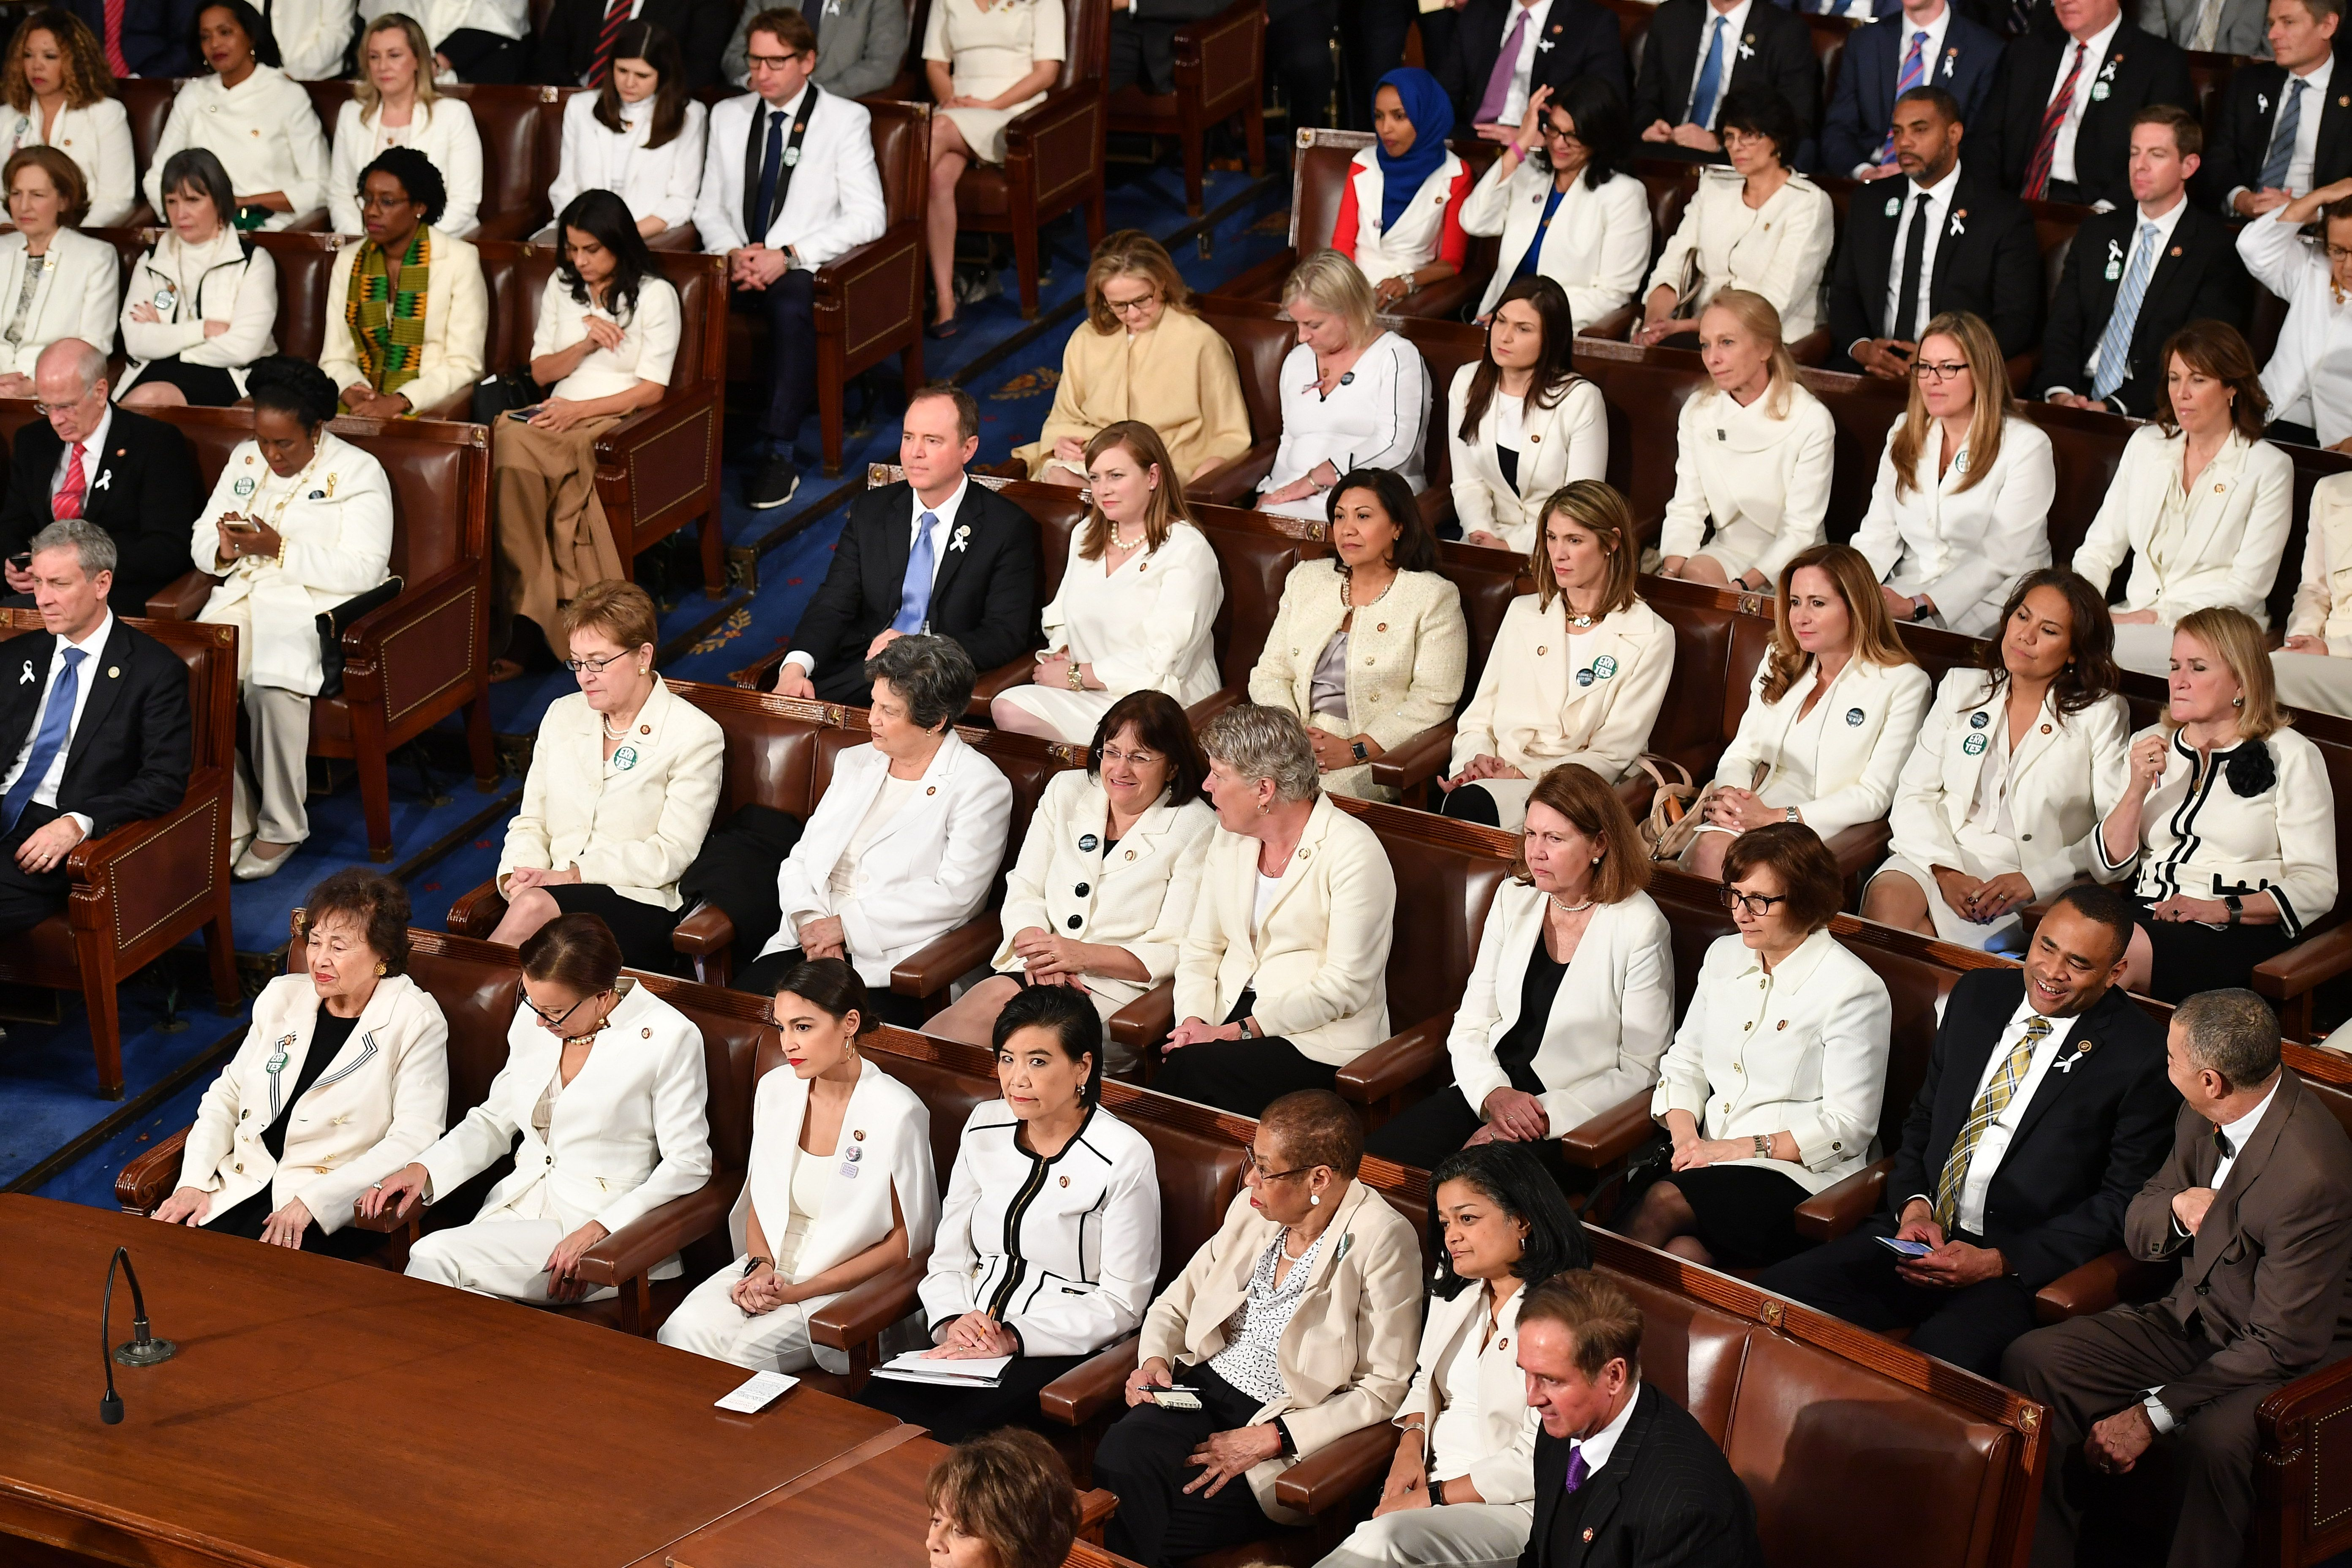 Congresswomen at the State of the Union